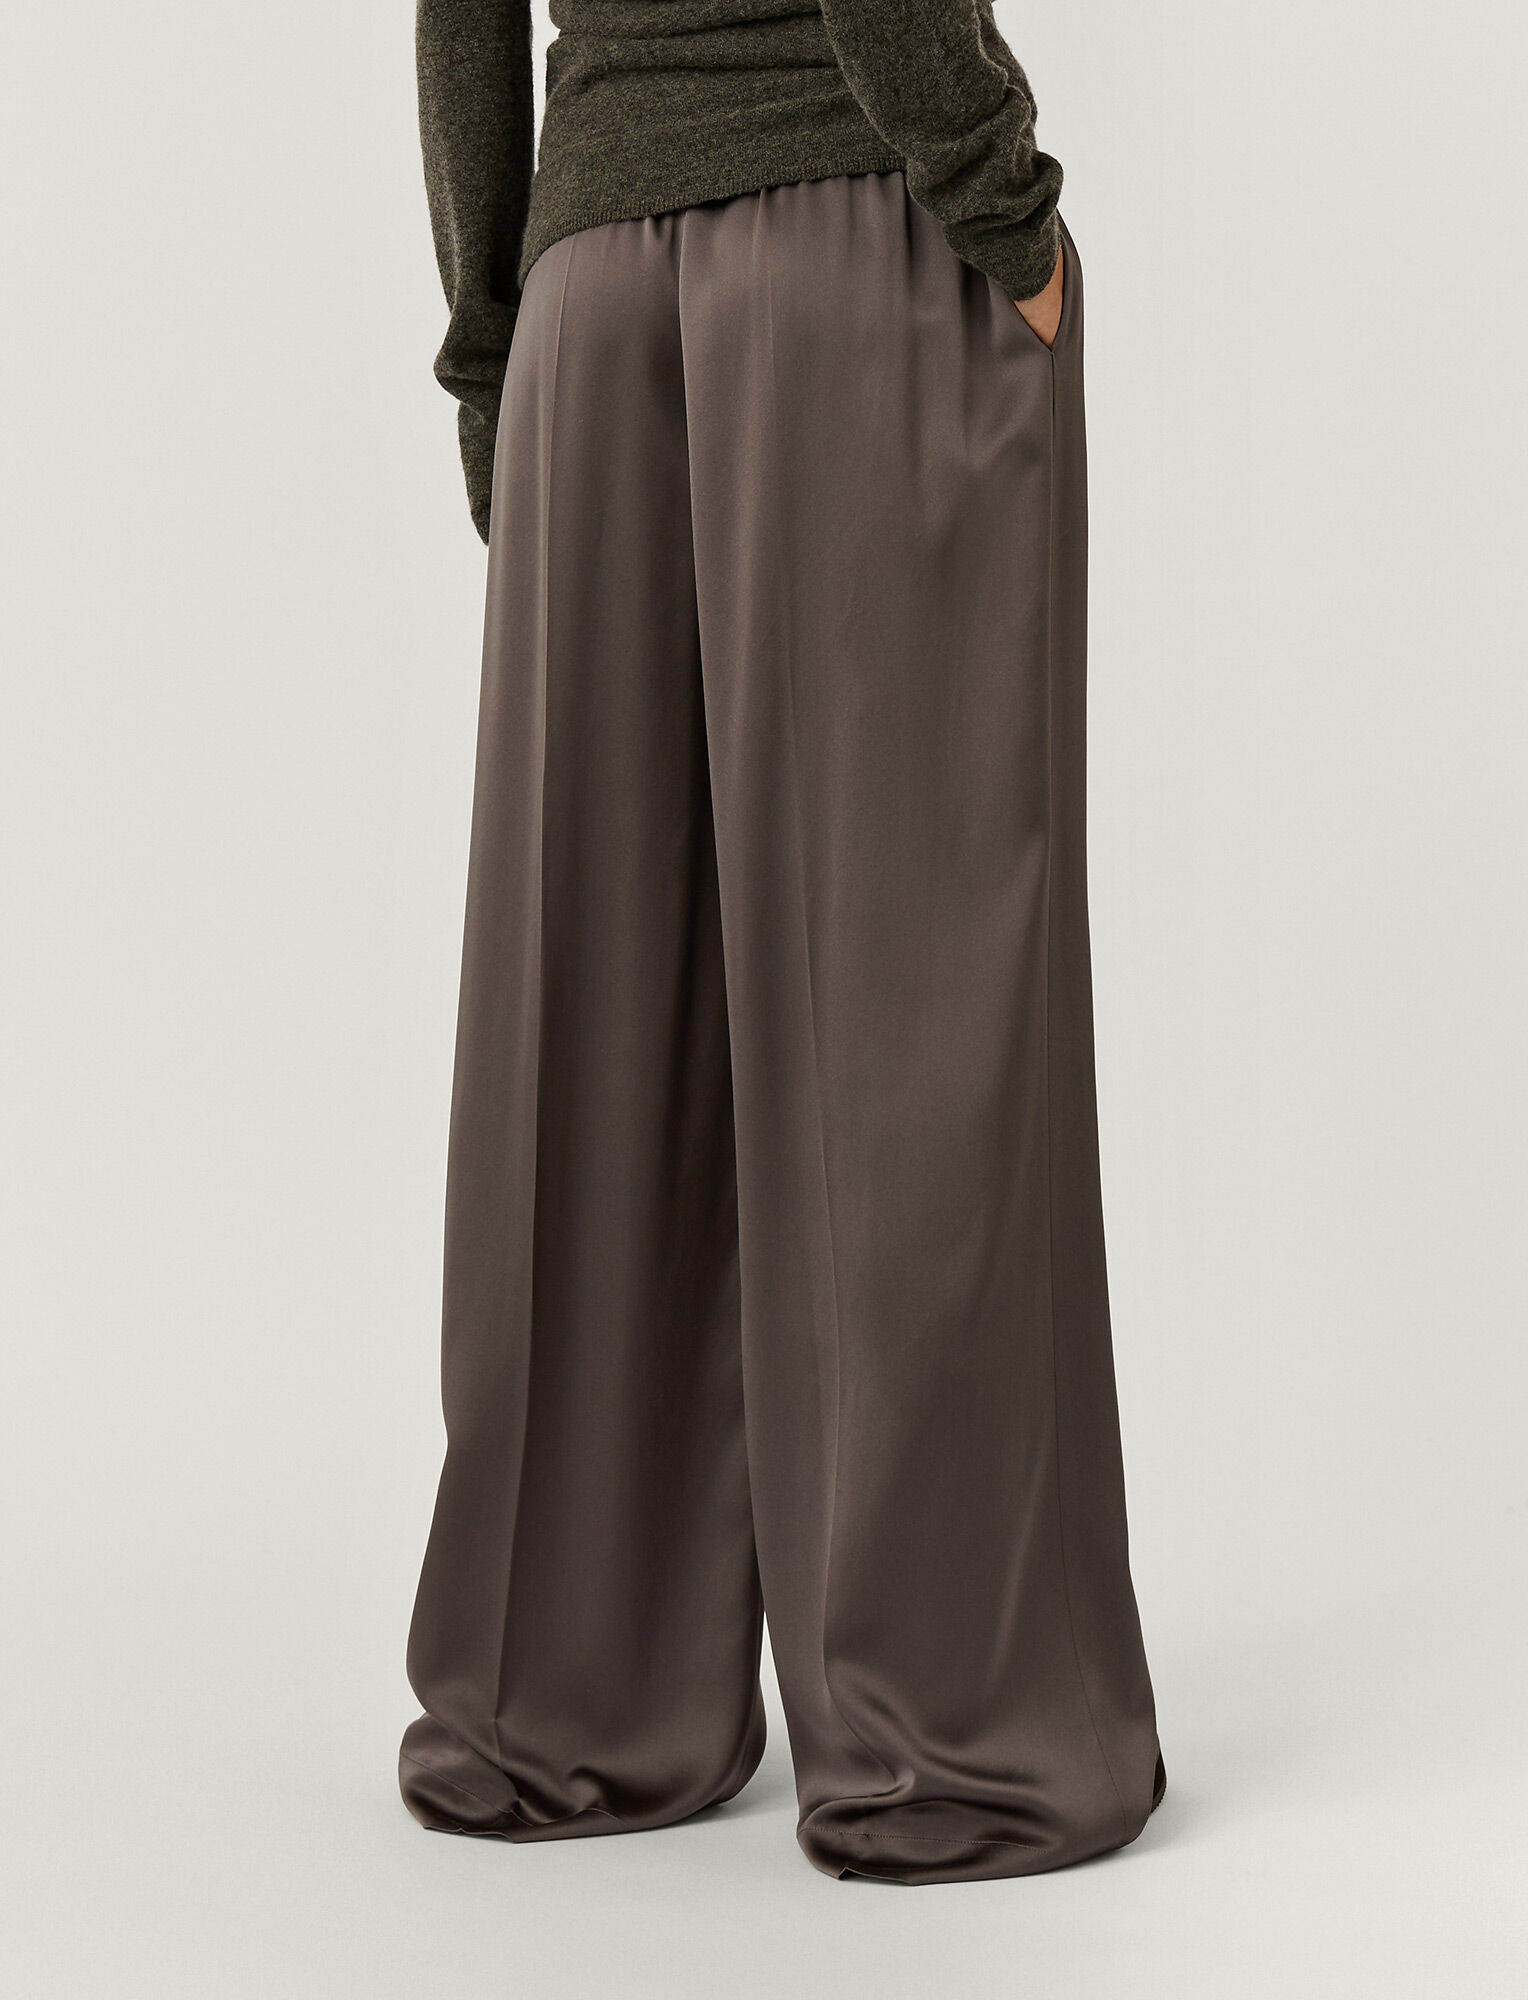 Joseph, Silk Satin Taffy Trousers, in ANTHRACITE